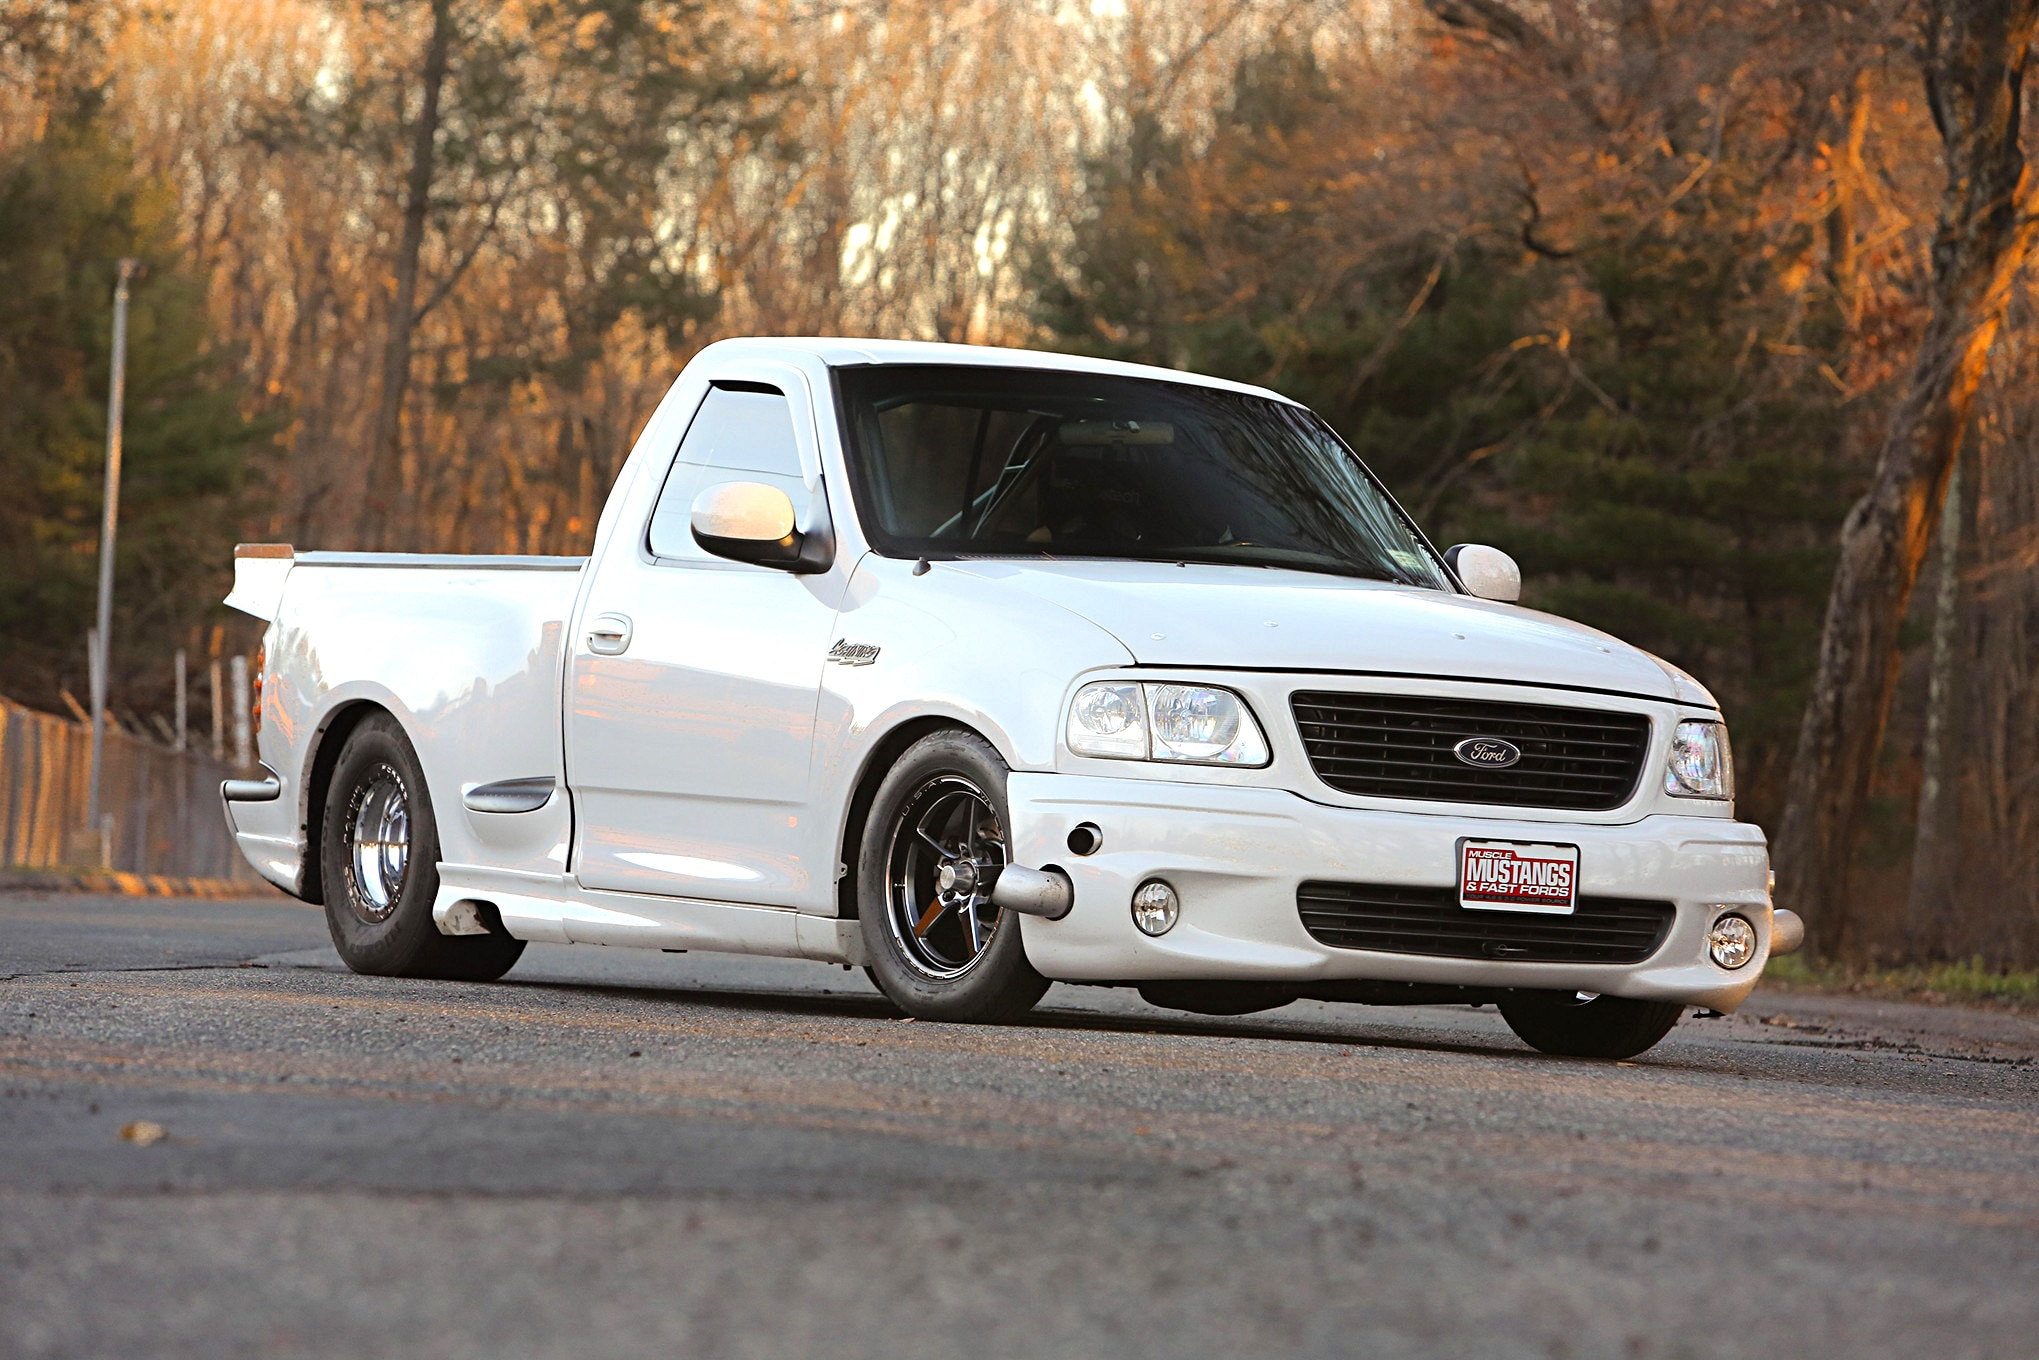 2004 Ford Lightning Yetti Front View